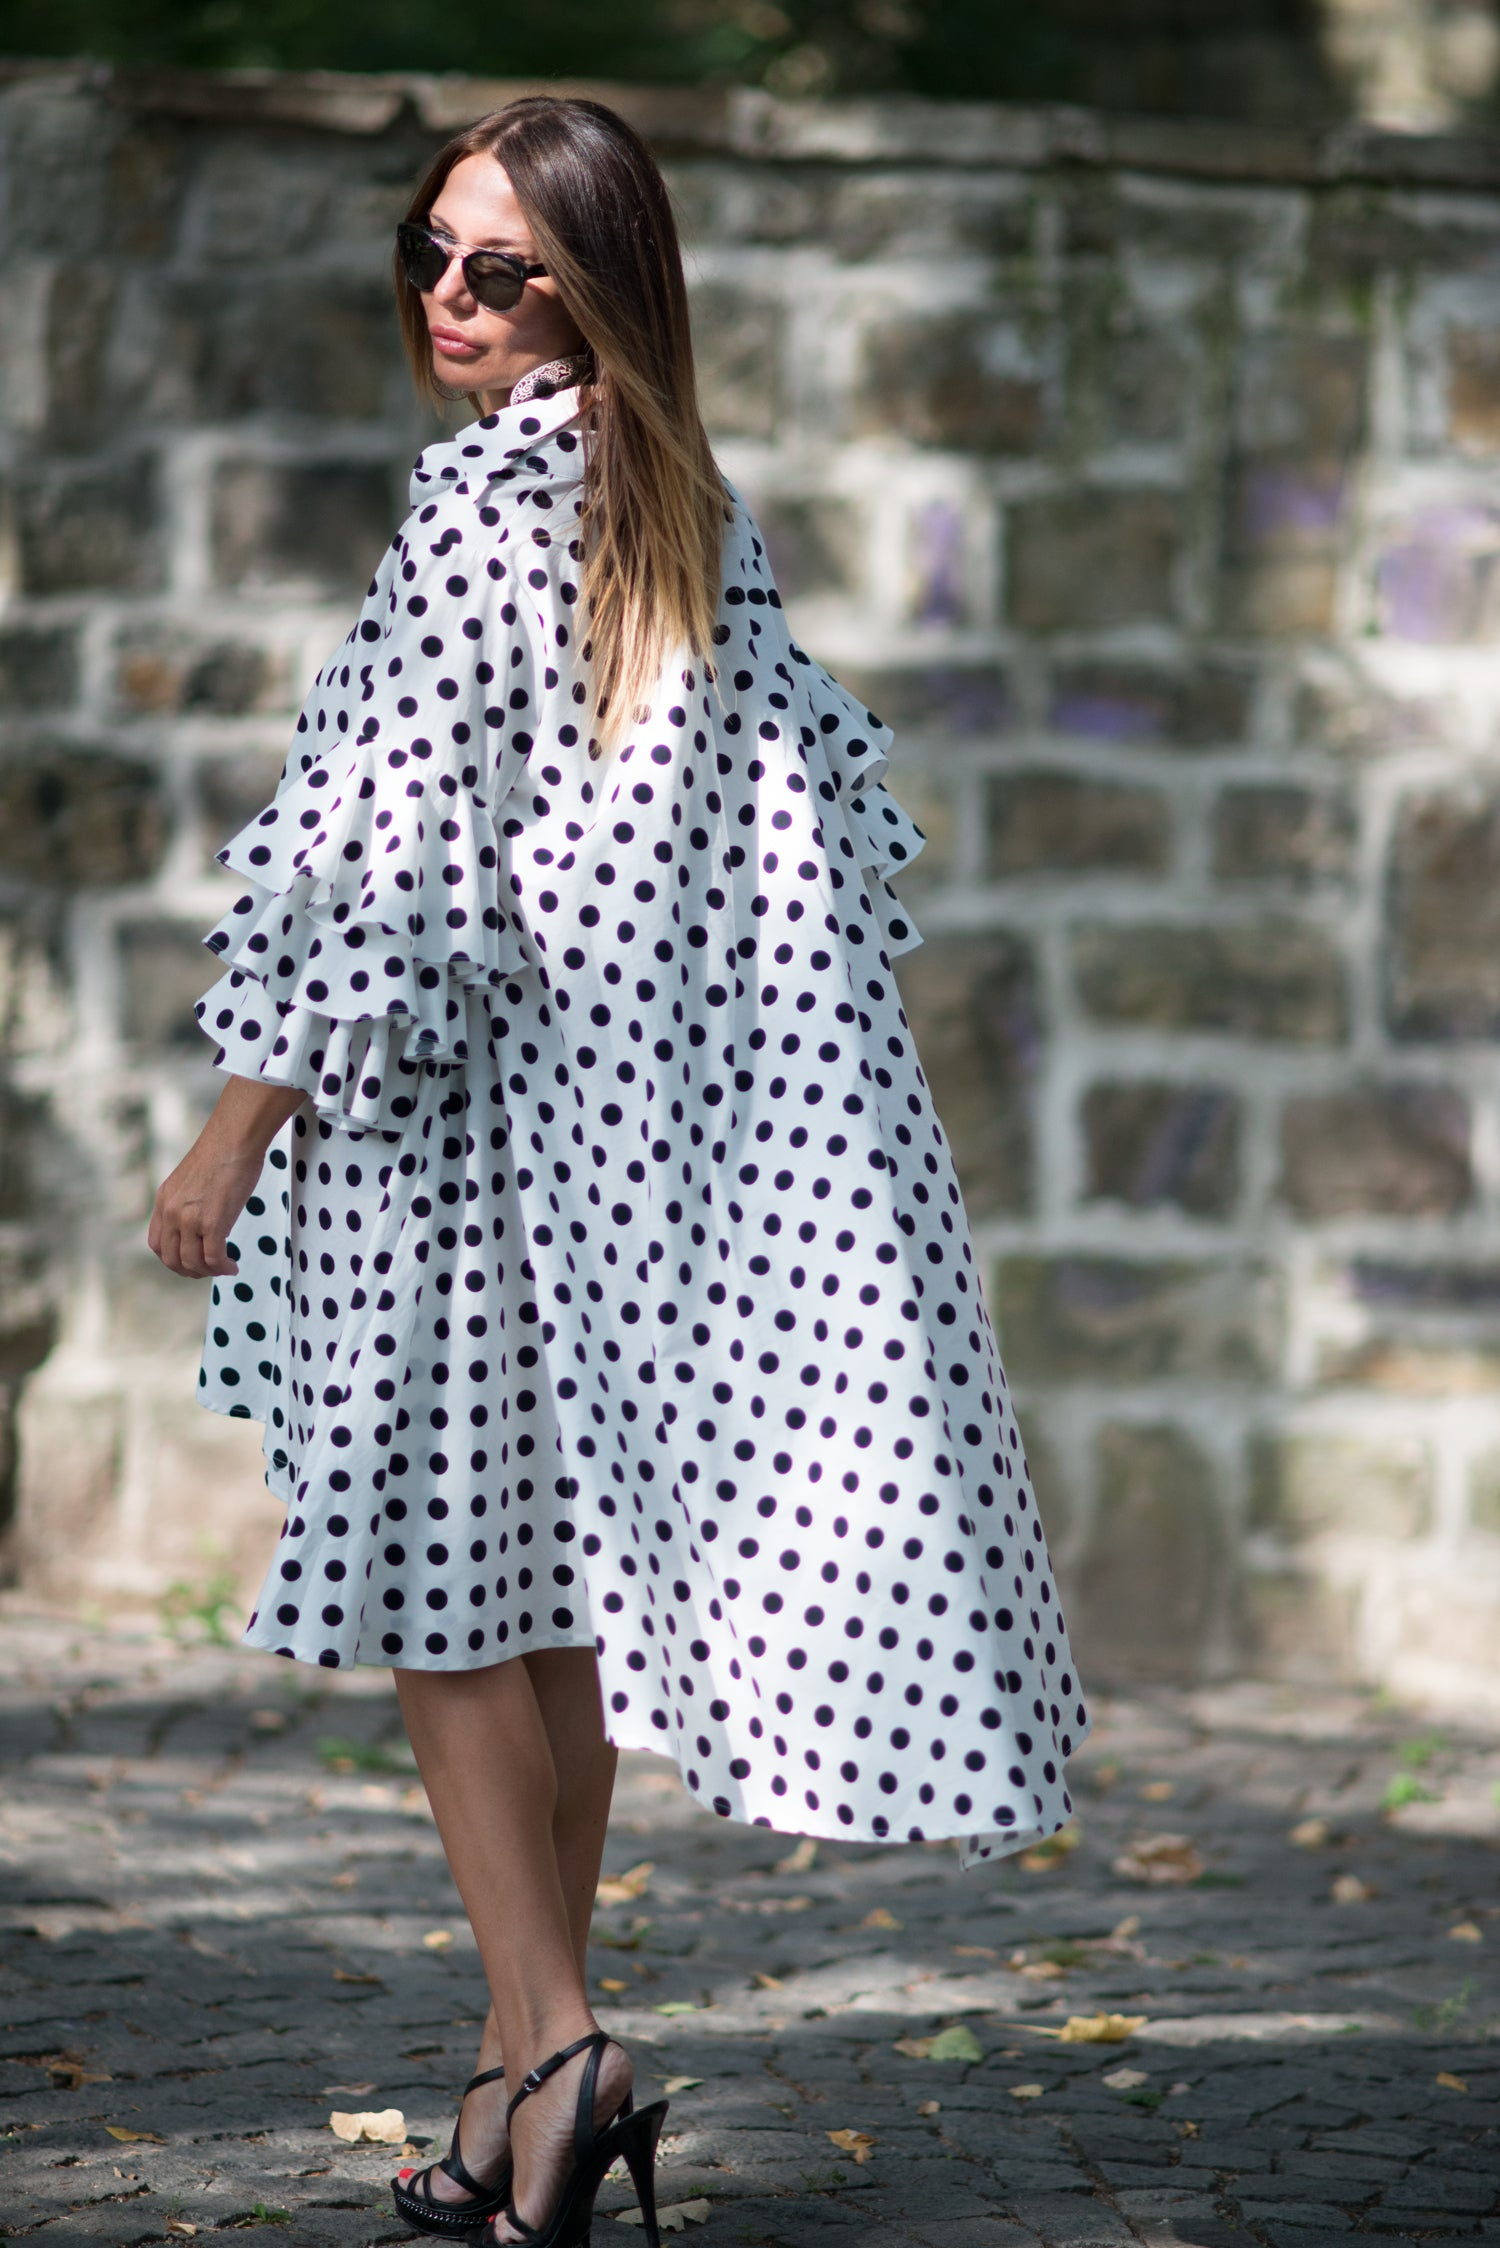 Polka dots maxi summer dress, Cotton party dress with flounces sleeves, Plus size dress